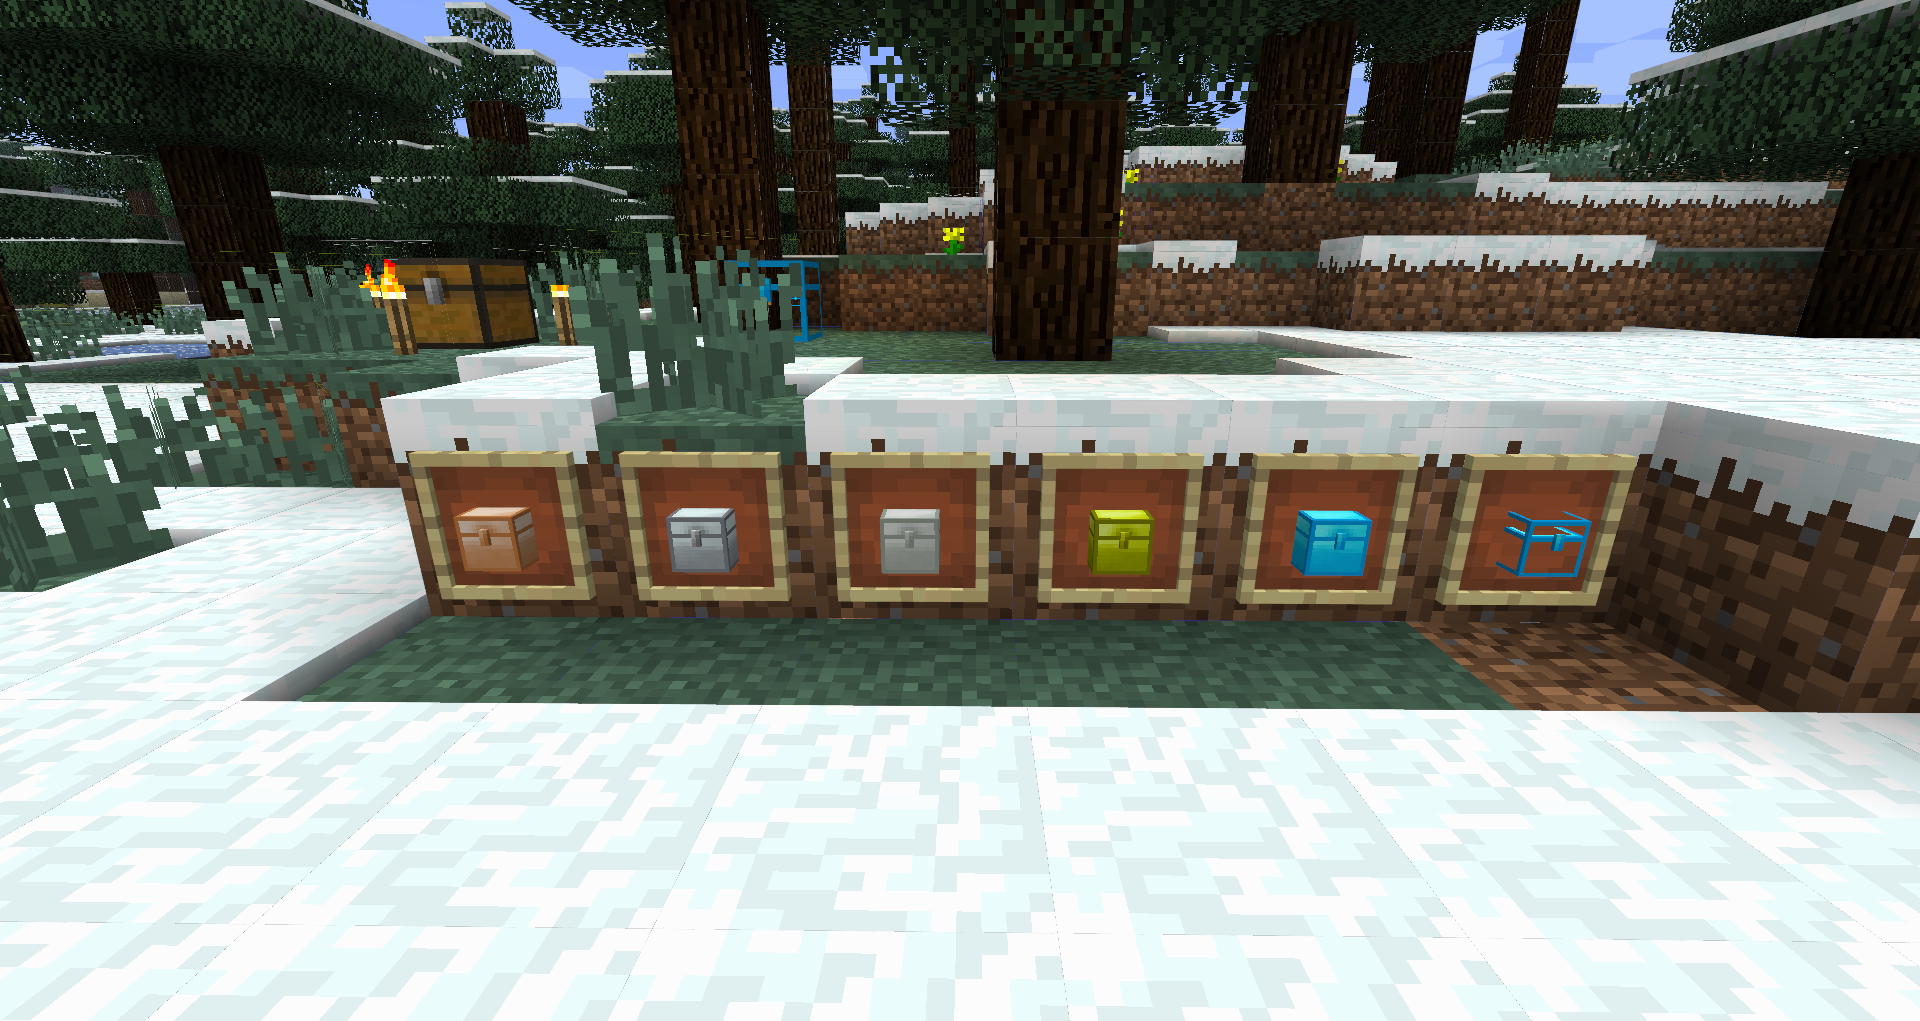 https://minecraft-forum.net/wp-content/uploads/2012/11/b95ab__Iron-Chests-Mod-1.png